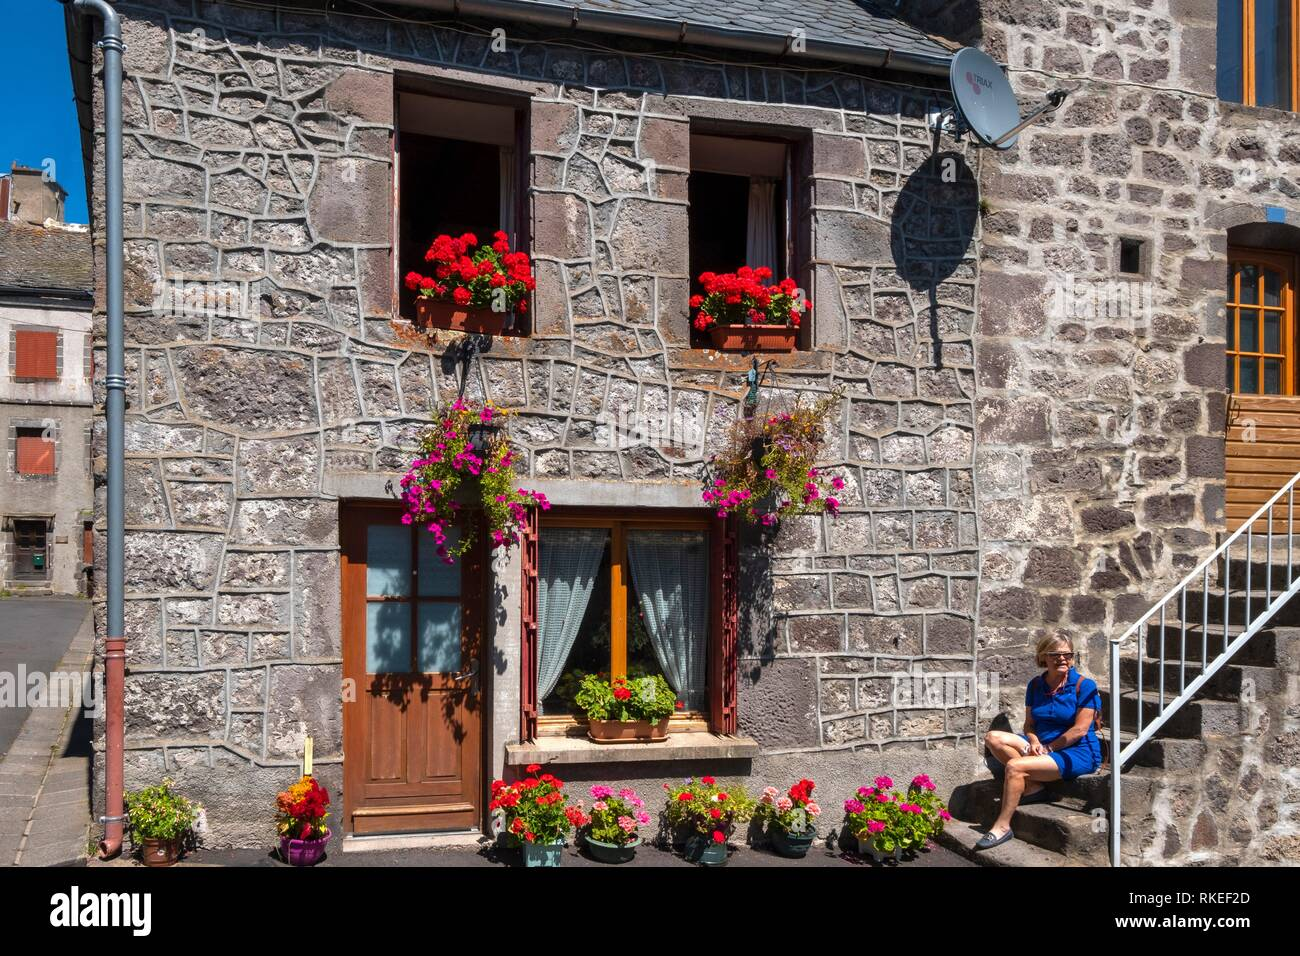 France, Auvergne, Puy de Dome, at the medieval viallage of Besse Saint Anasthaise. - Stock Image